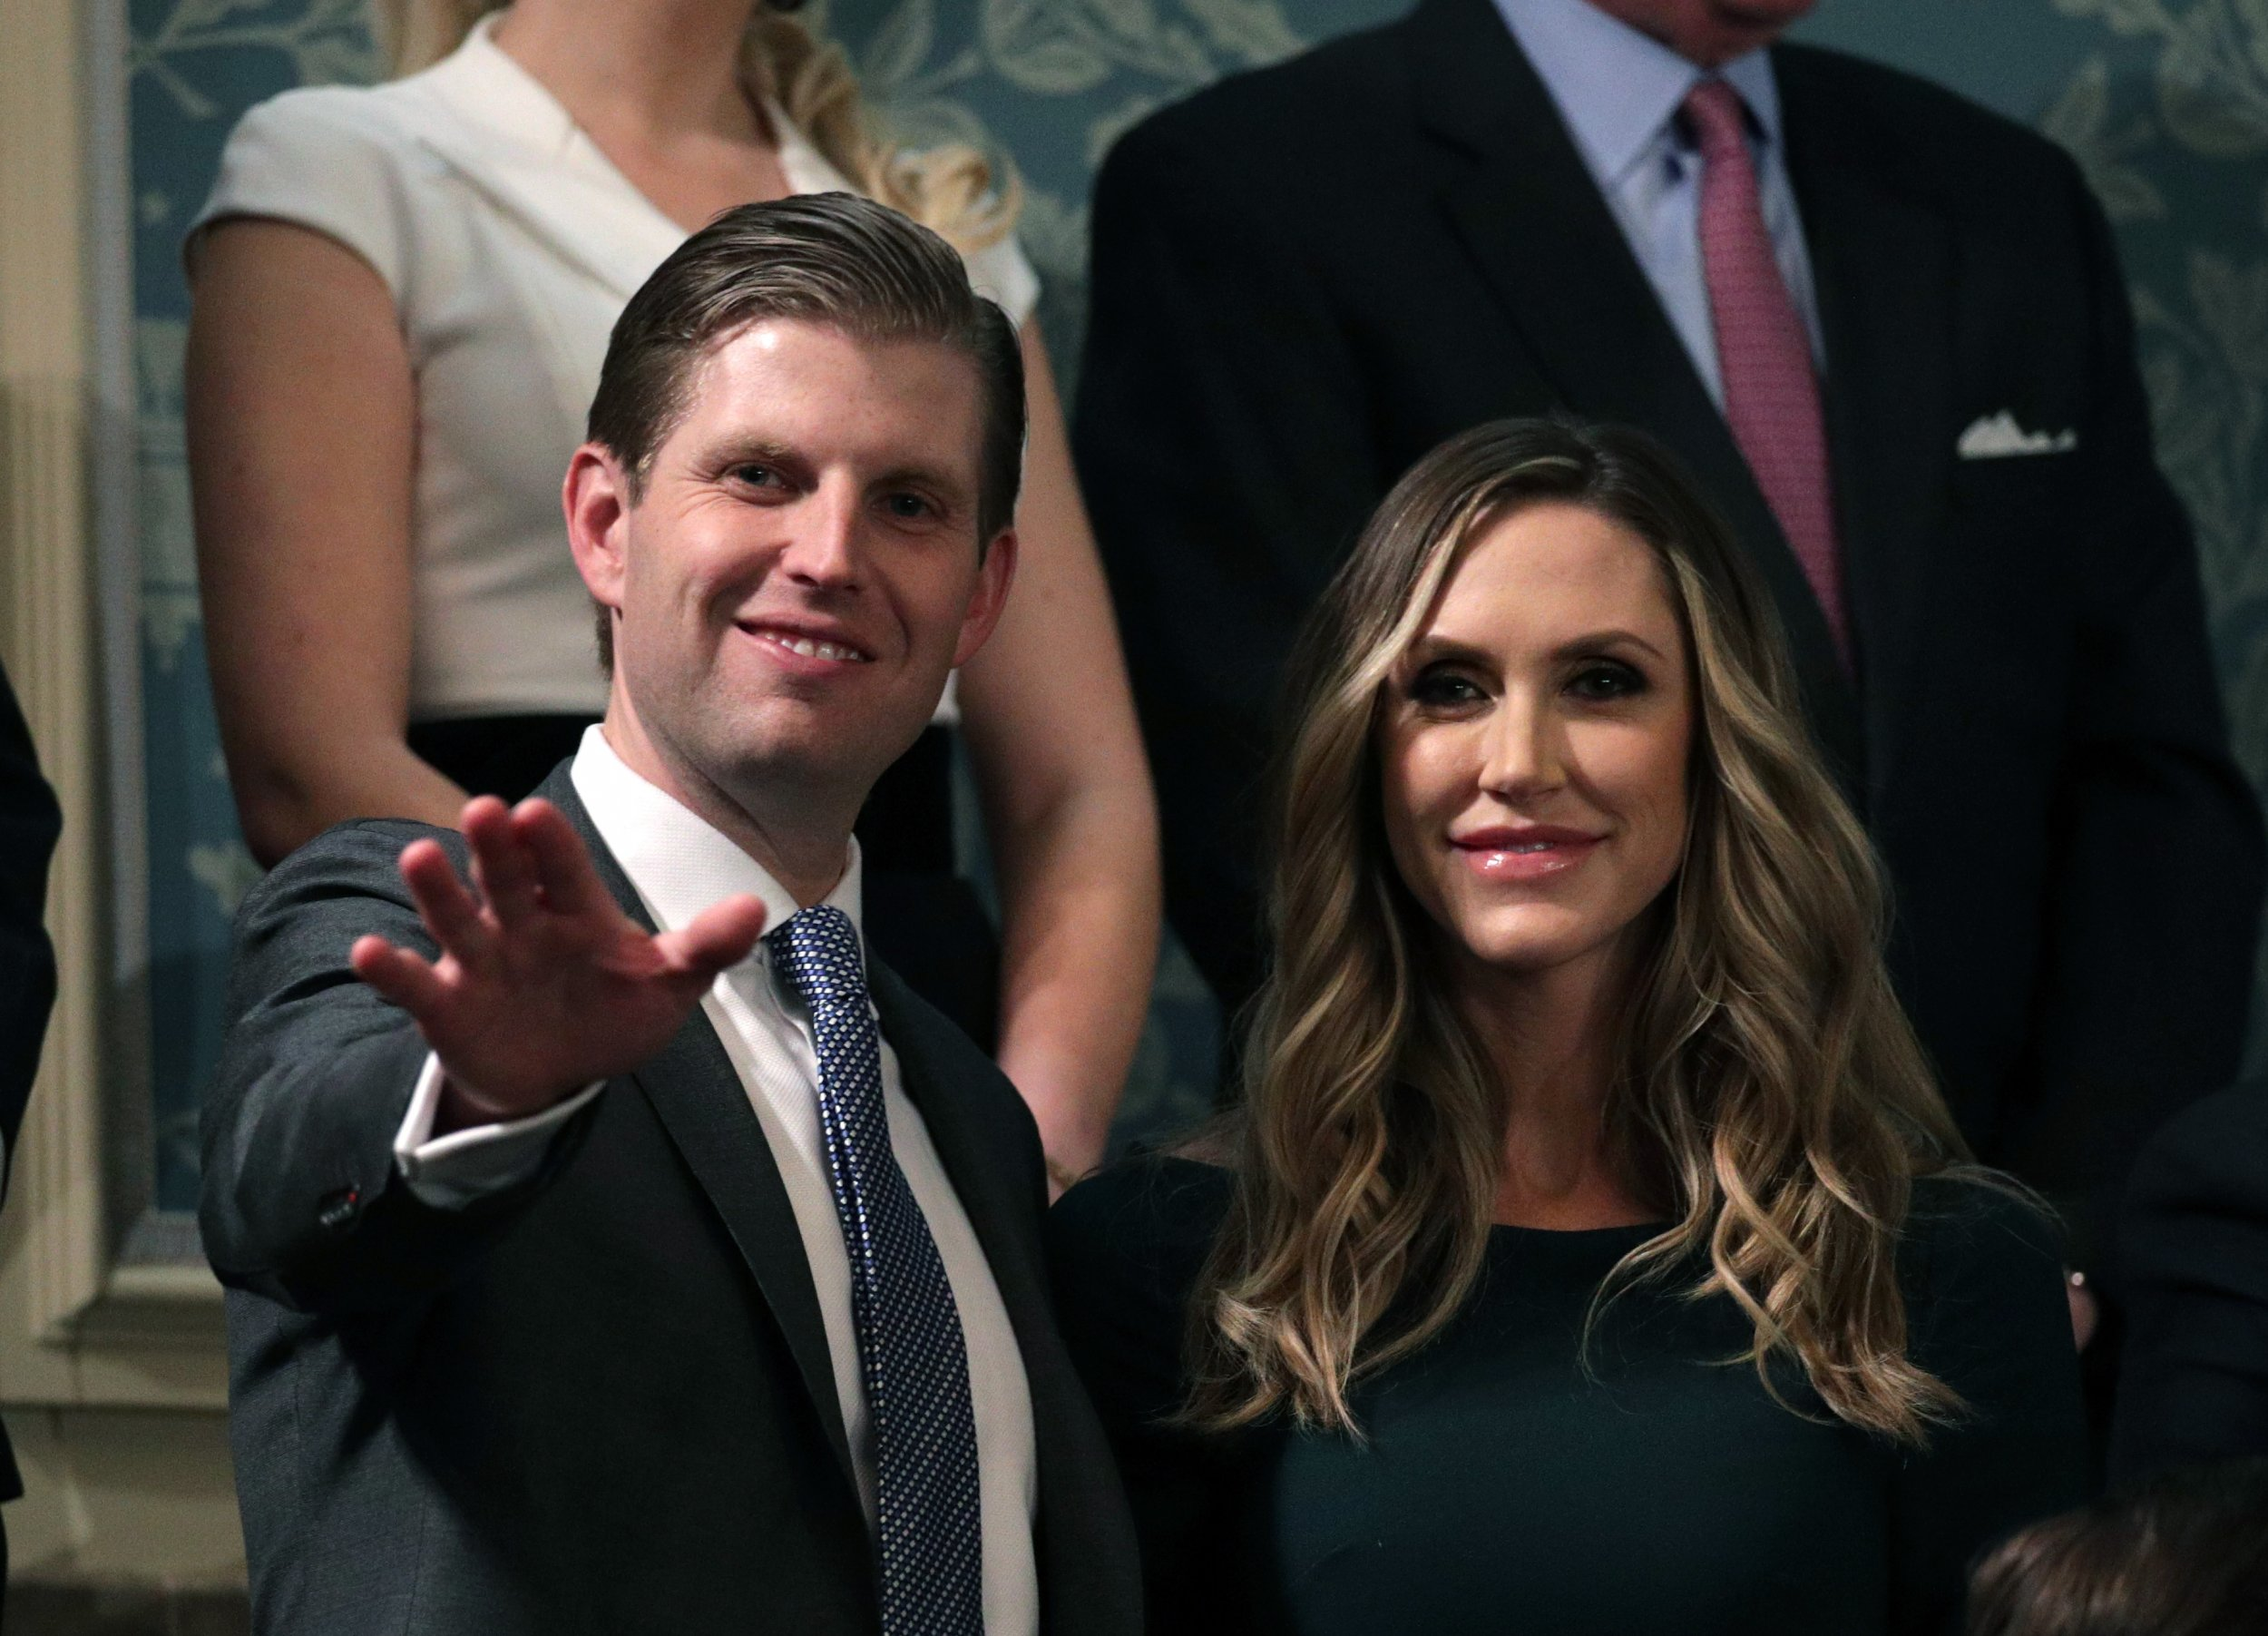 Lara Trump Says Media Is 'Out to Get the President and Our Entire Family at Every Turn'